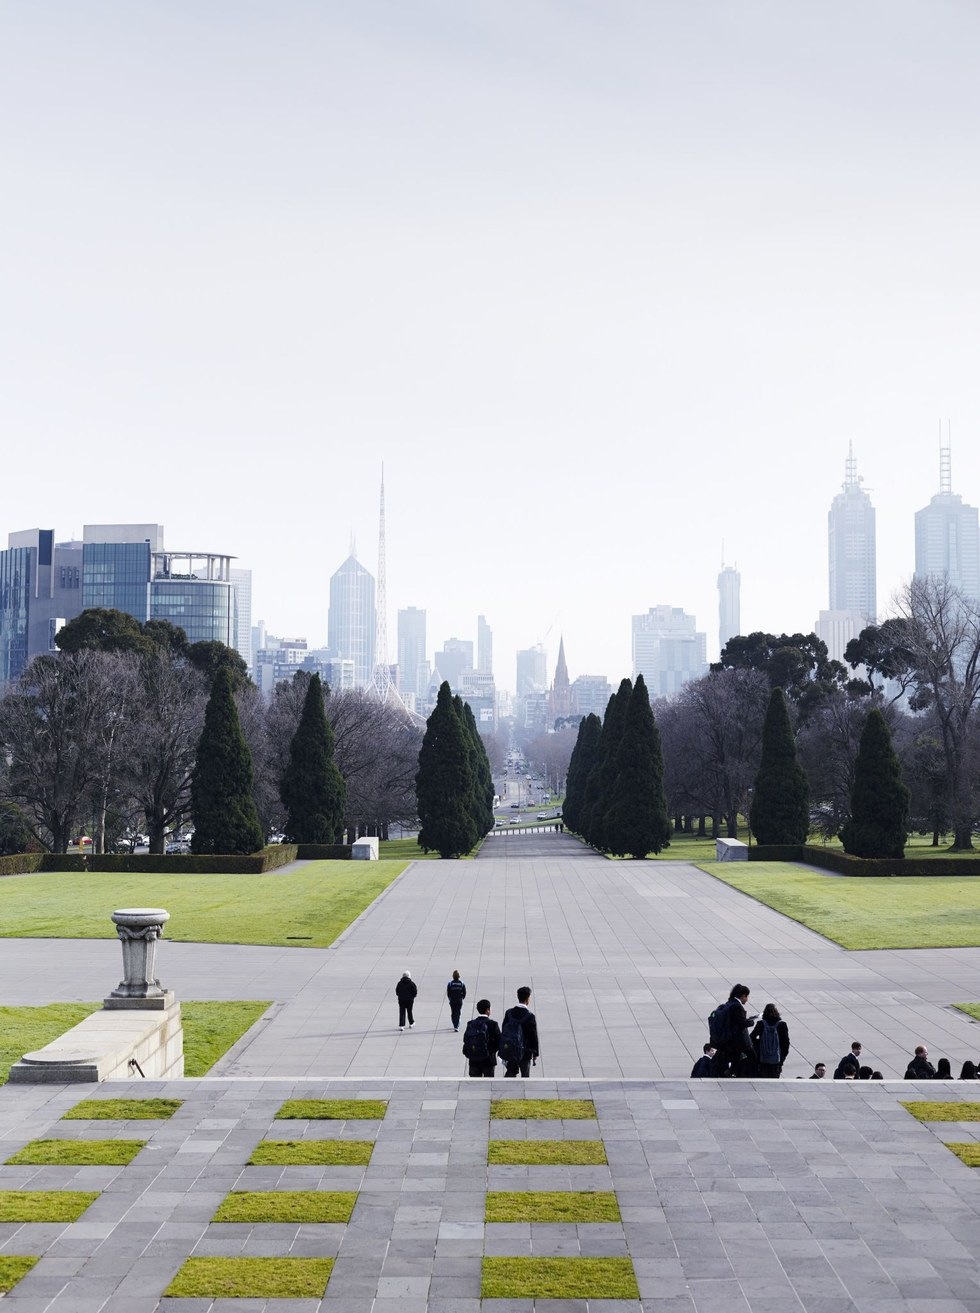 Tranquility prevails at the Shrine of Remembrance